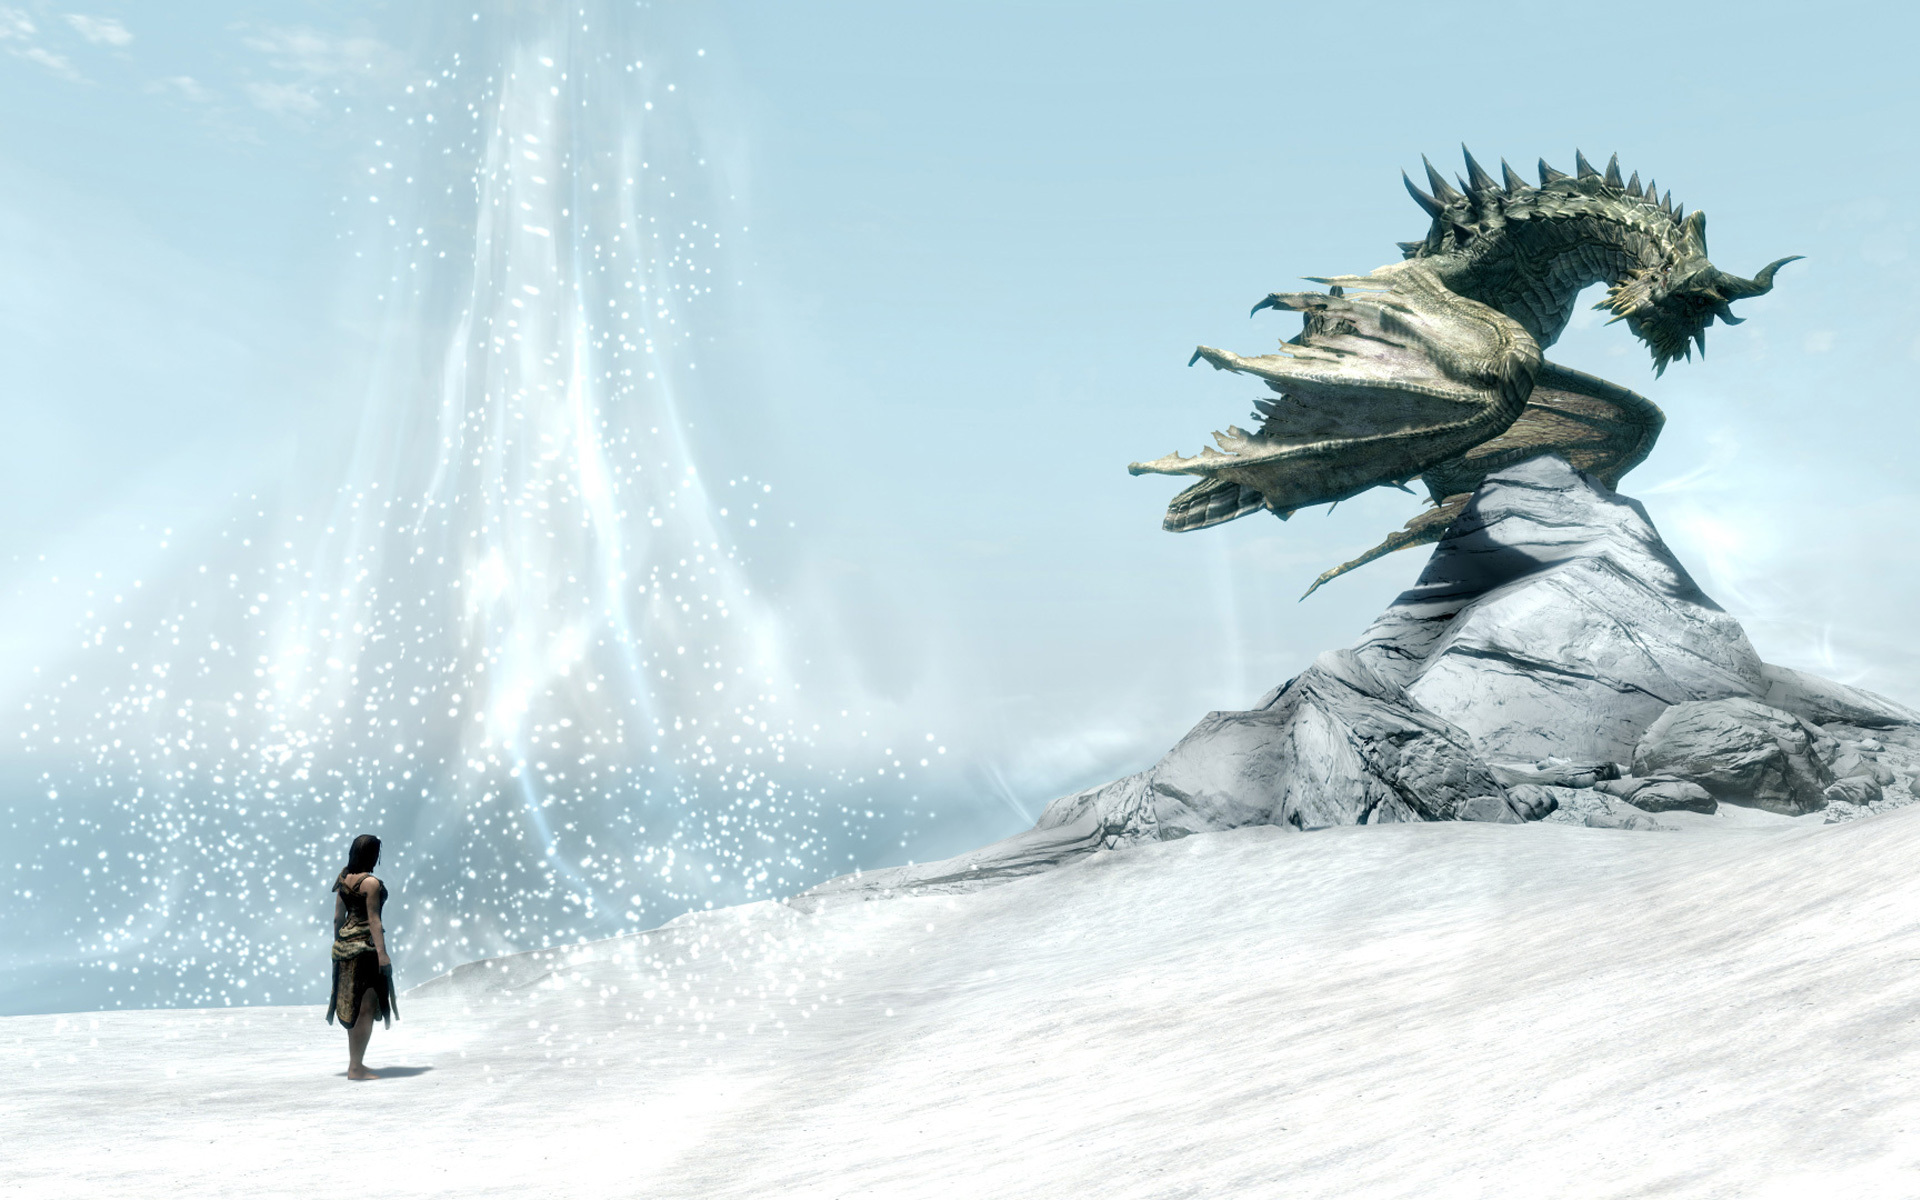 Wallpaper The Elder Scrolls V: Skyrim dragon and snow